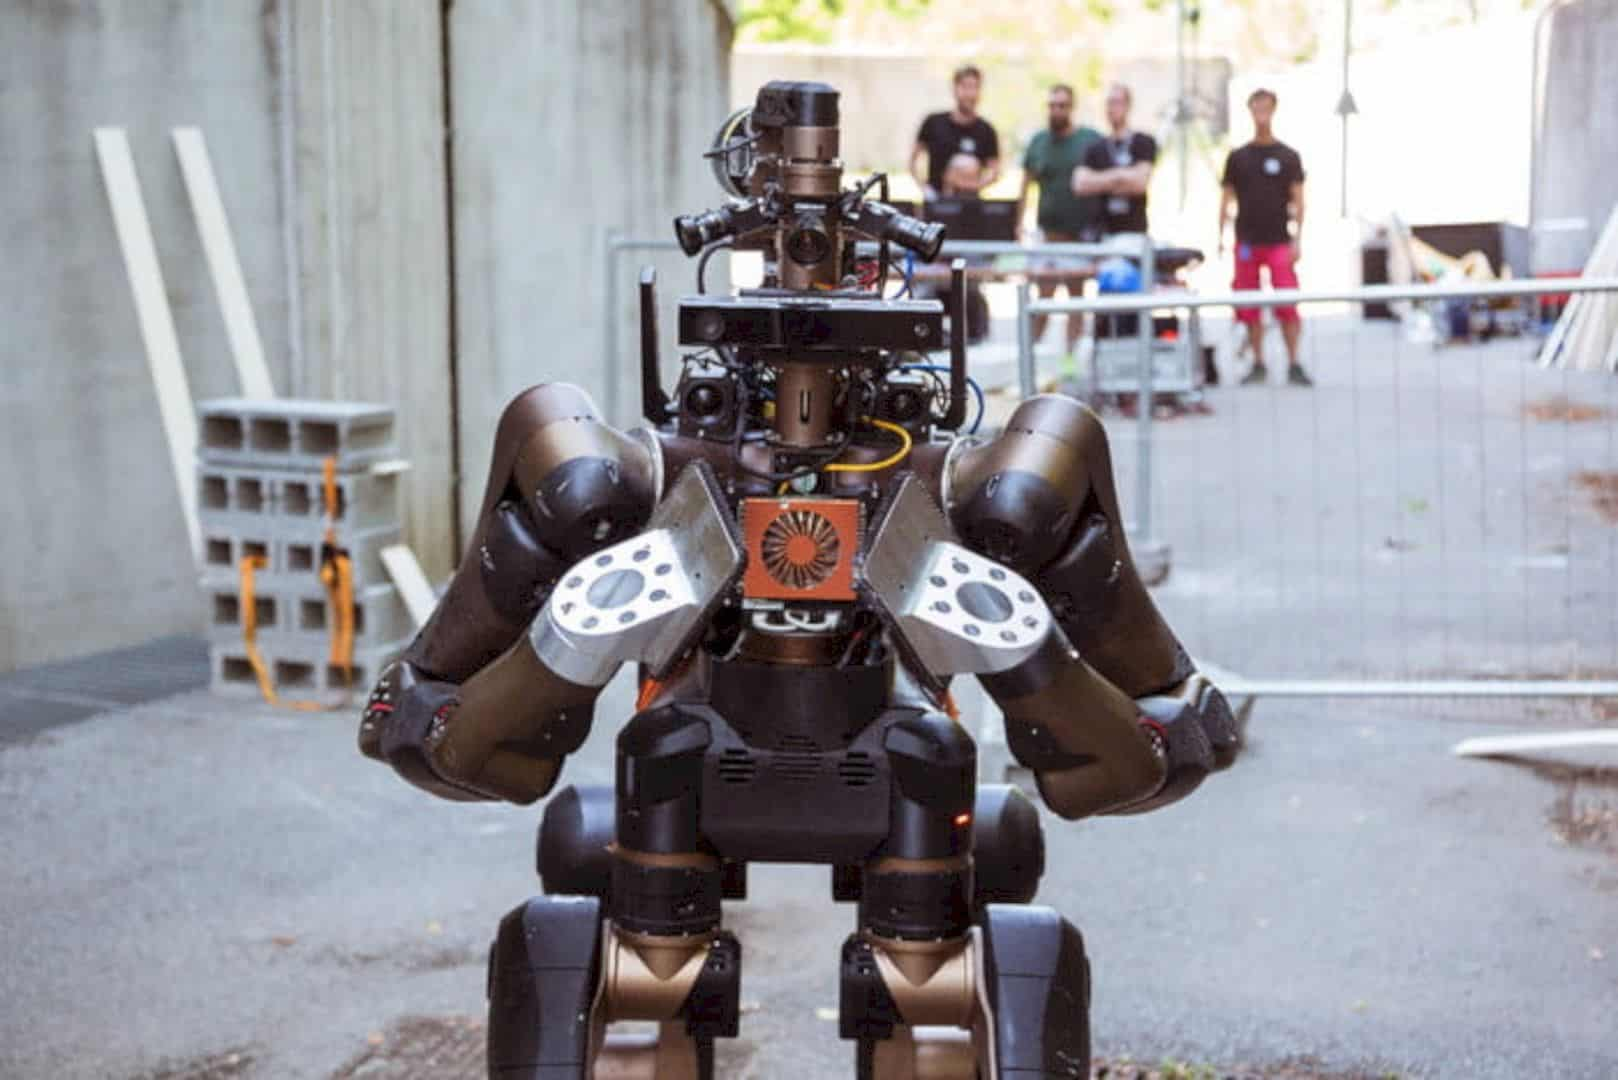 Centauro: The Disaster Response Robot in a Centaur-like Shape